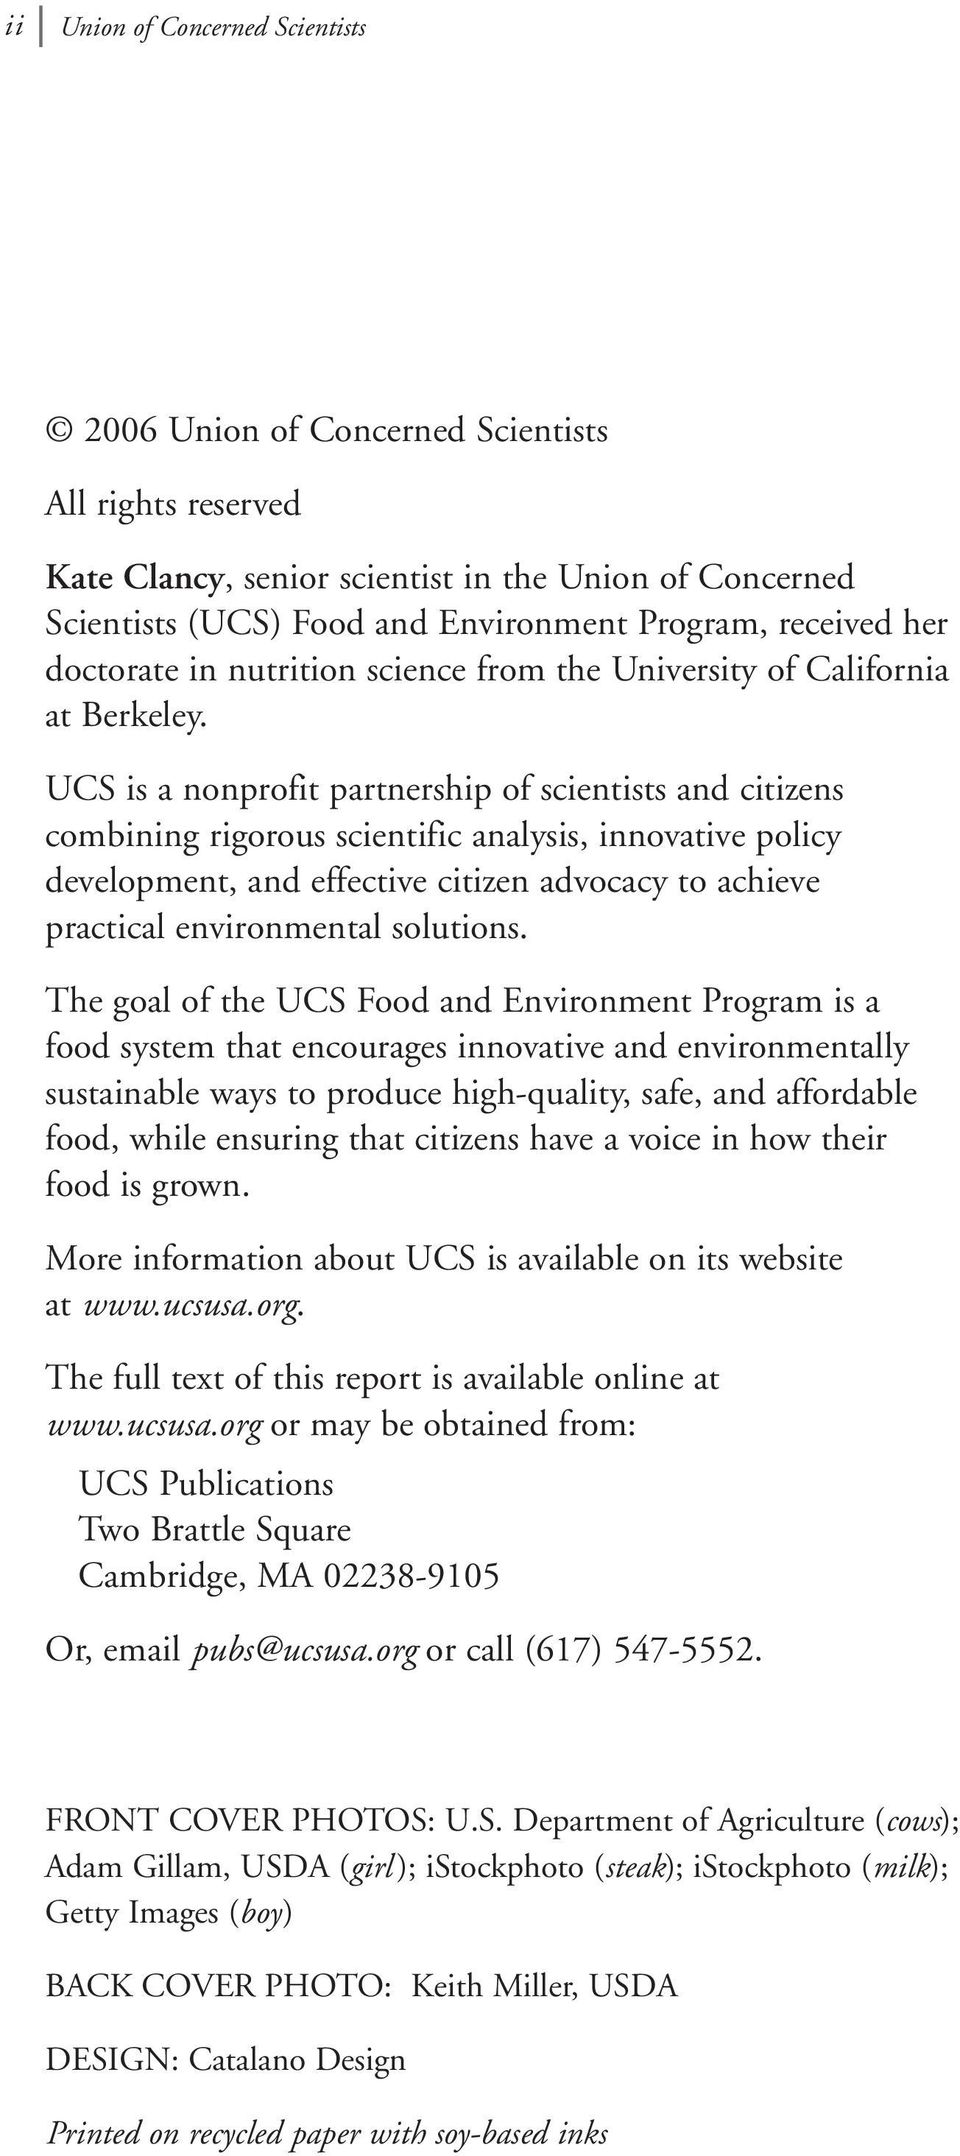 UCS is a nonprofit partnership of scientists and citizens combining rigorous scientific analysis, innovative policy development, and effective citizen advocacy to achieve practical environmental